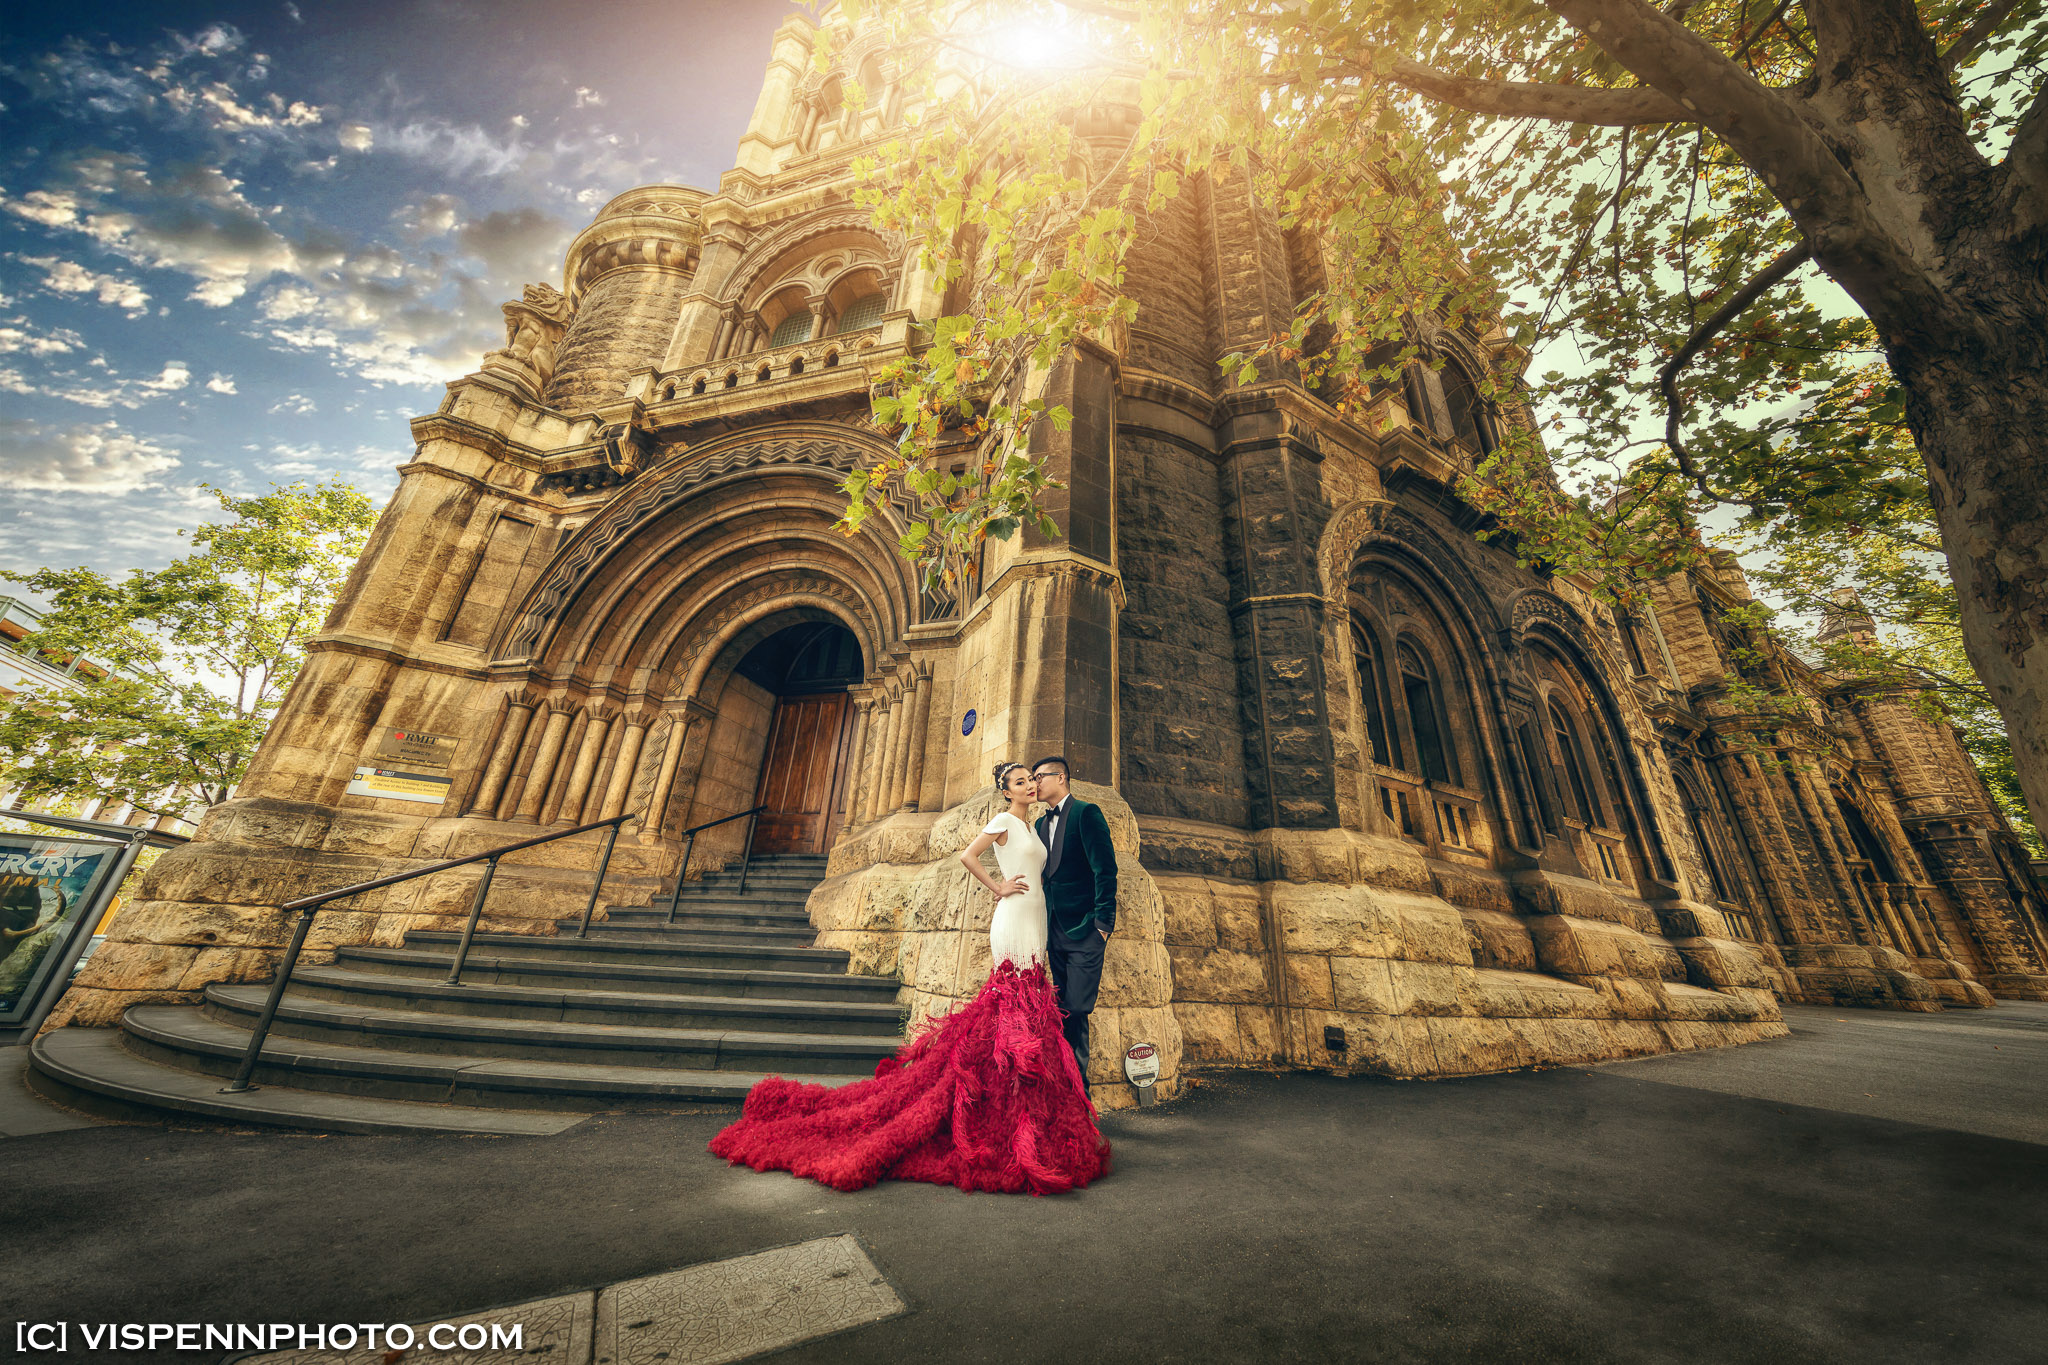 PRE WEDDING Photography Melbourne ZHPENN StacieYi PreWedding 5843 1